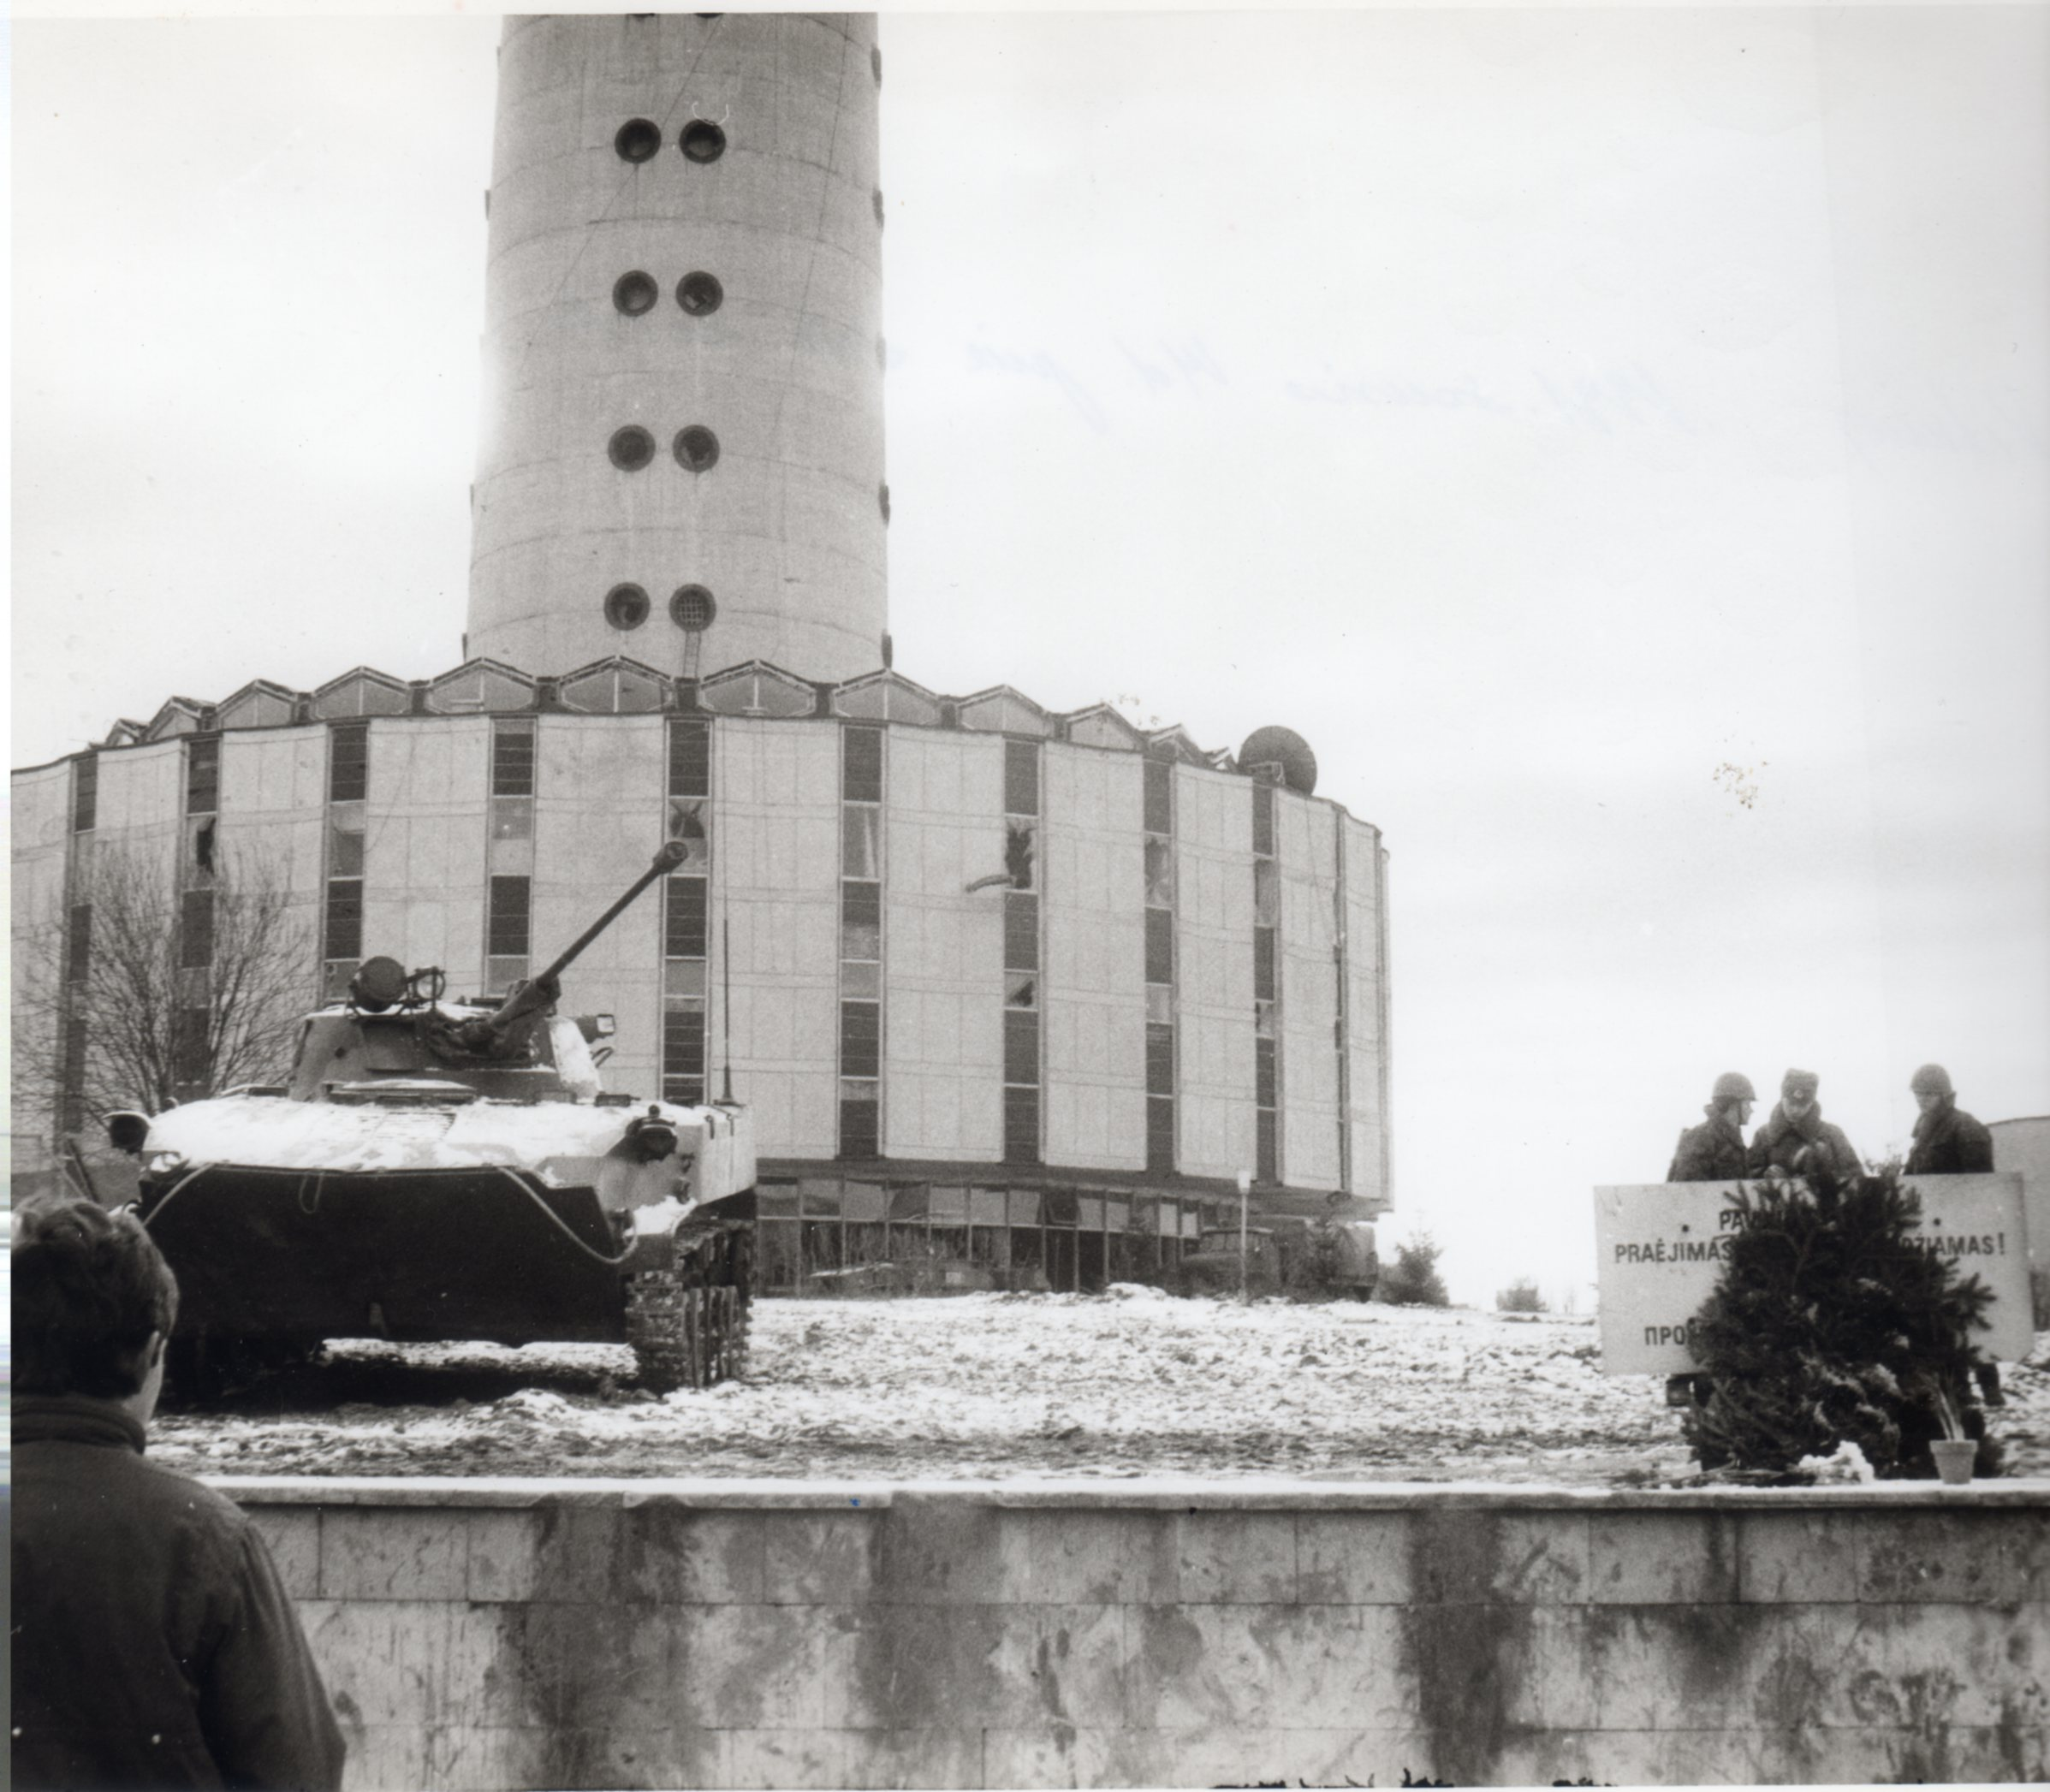 Soviet troops guarding the TV Tower. (photo: R.Jurgaitis)